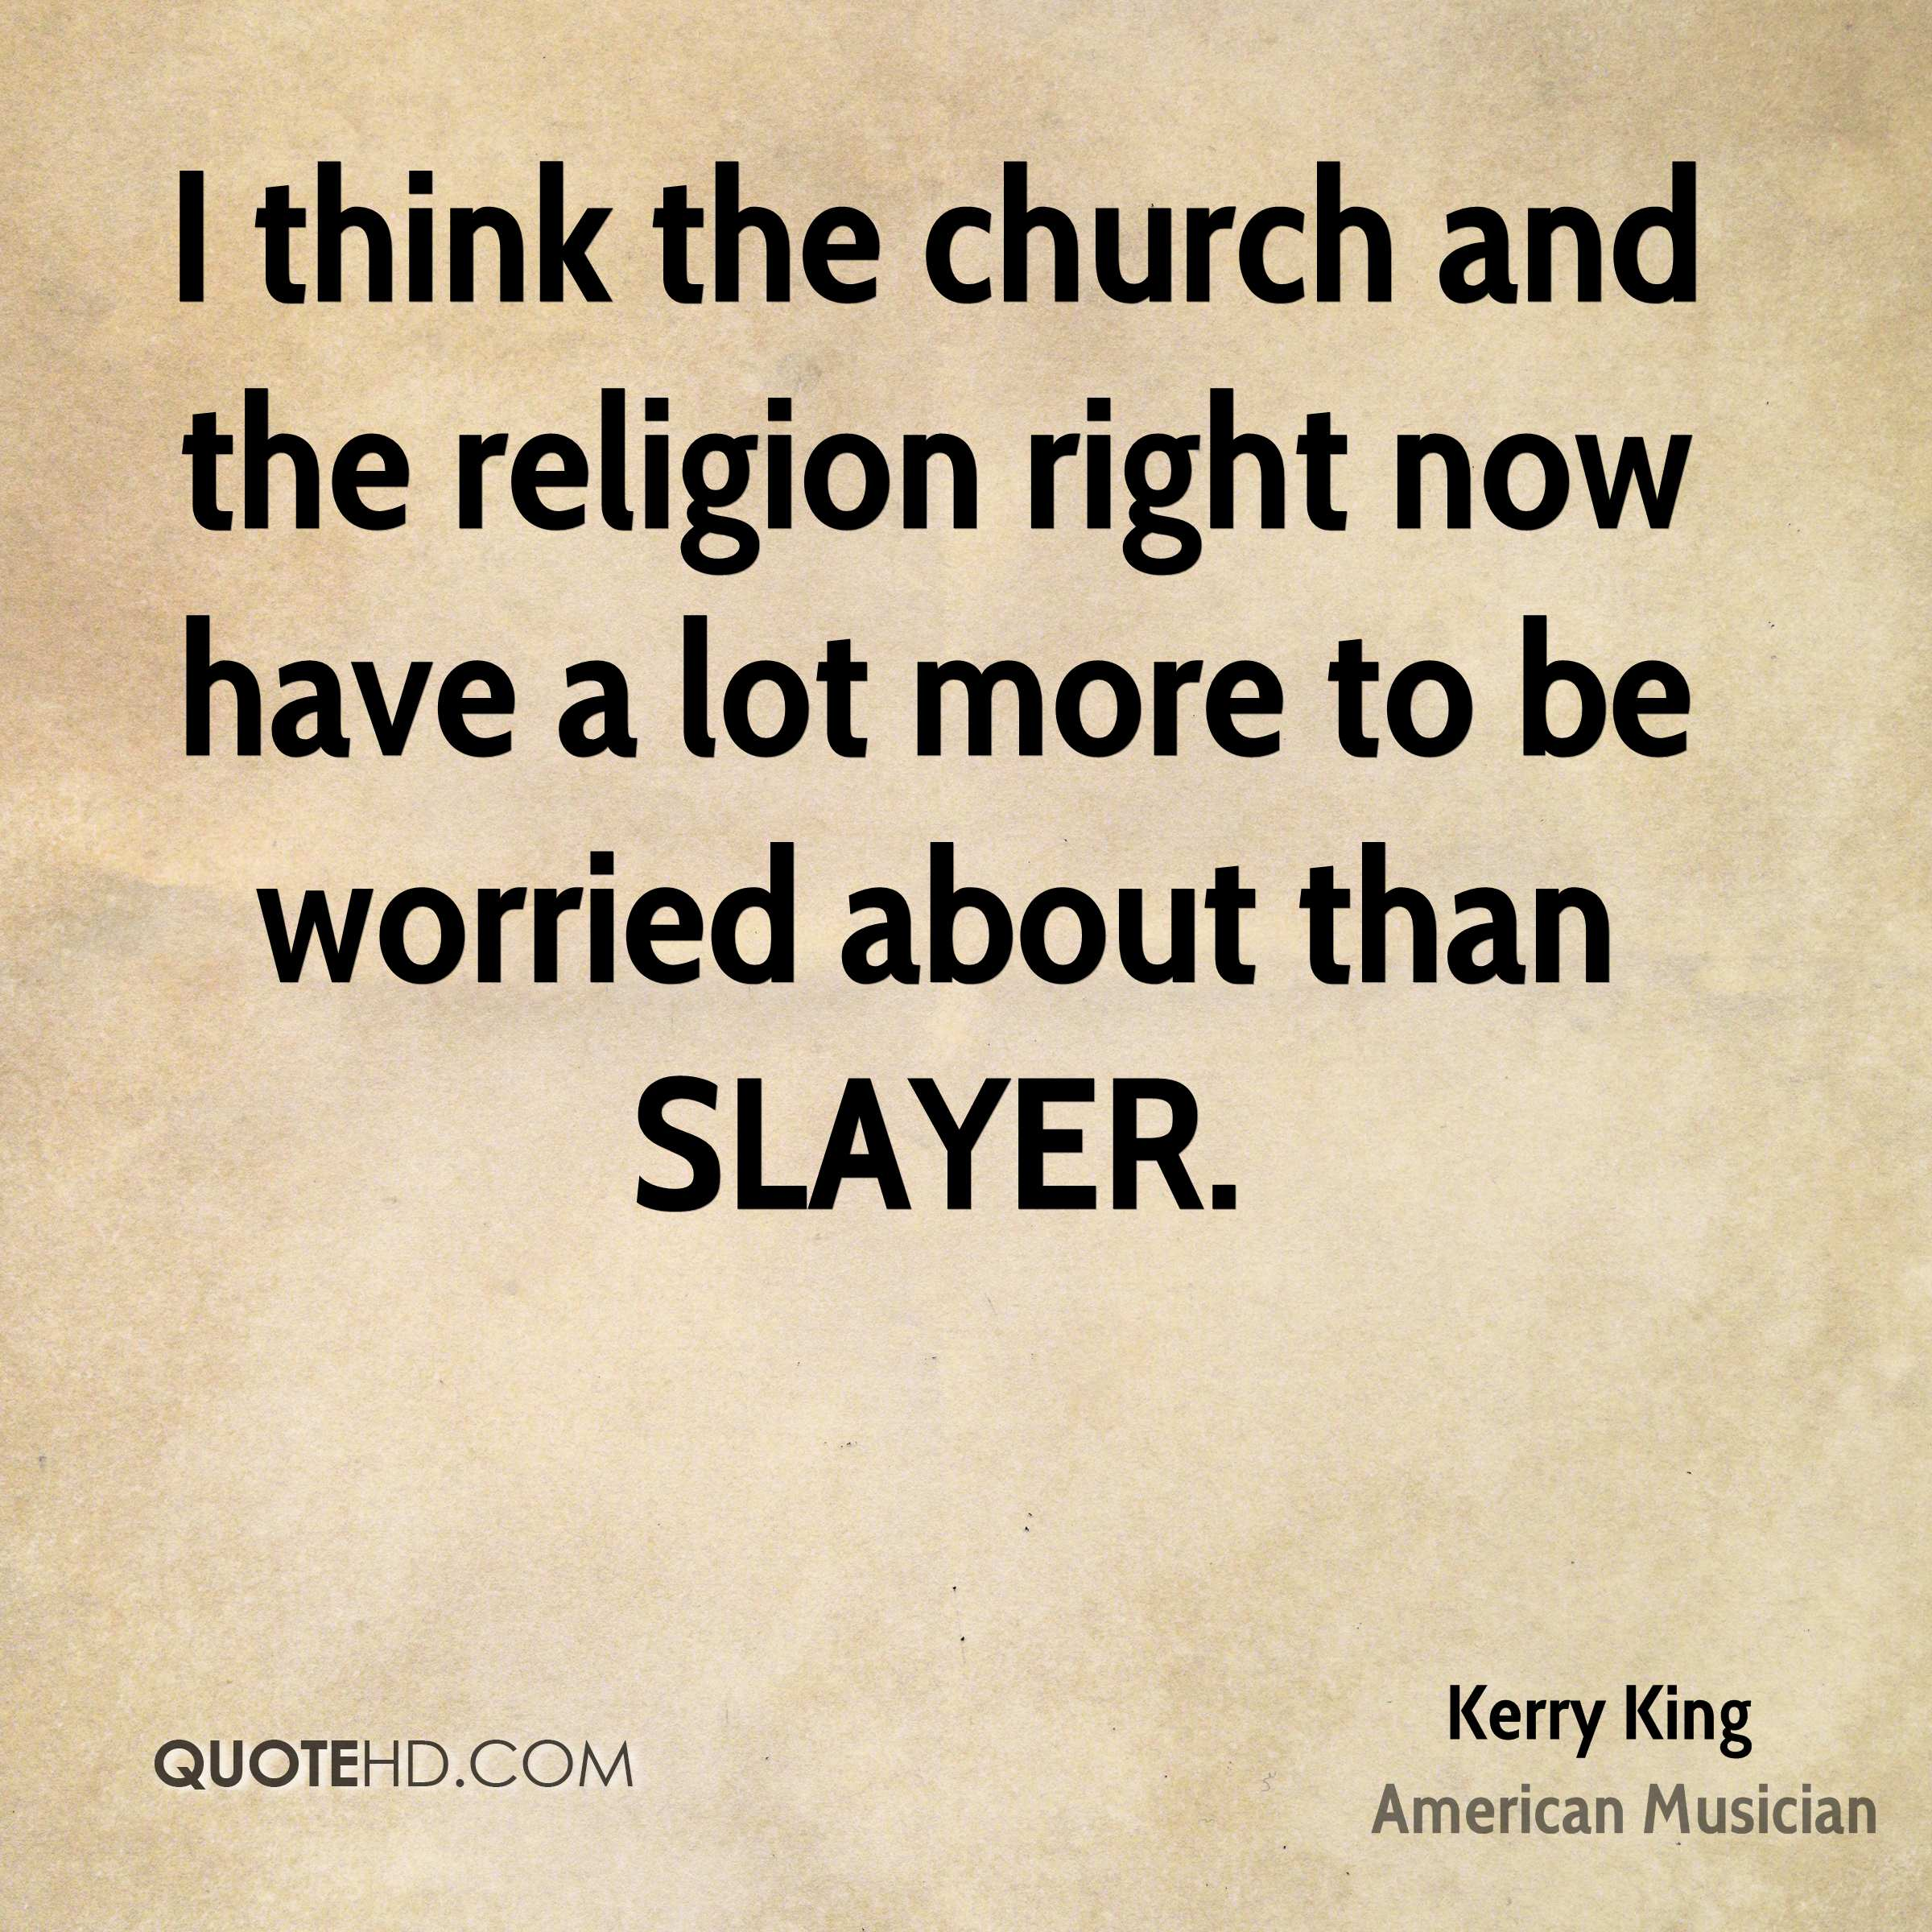 I think the church and the religion right now have a lot more to be worried about than SLAYER.